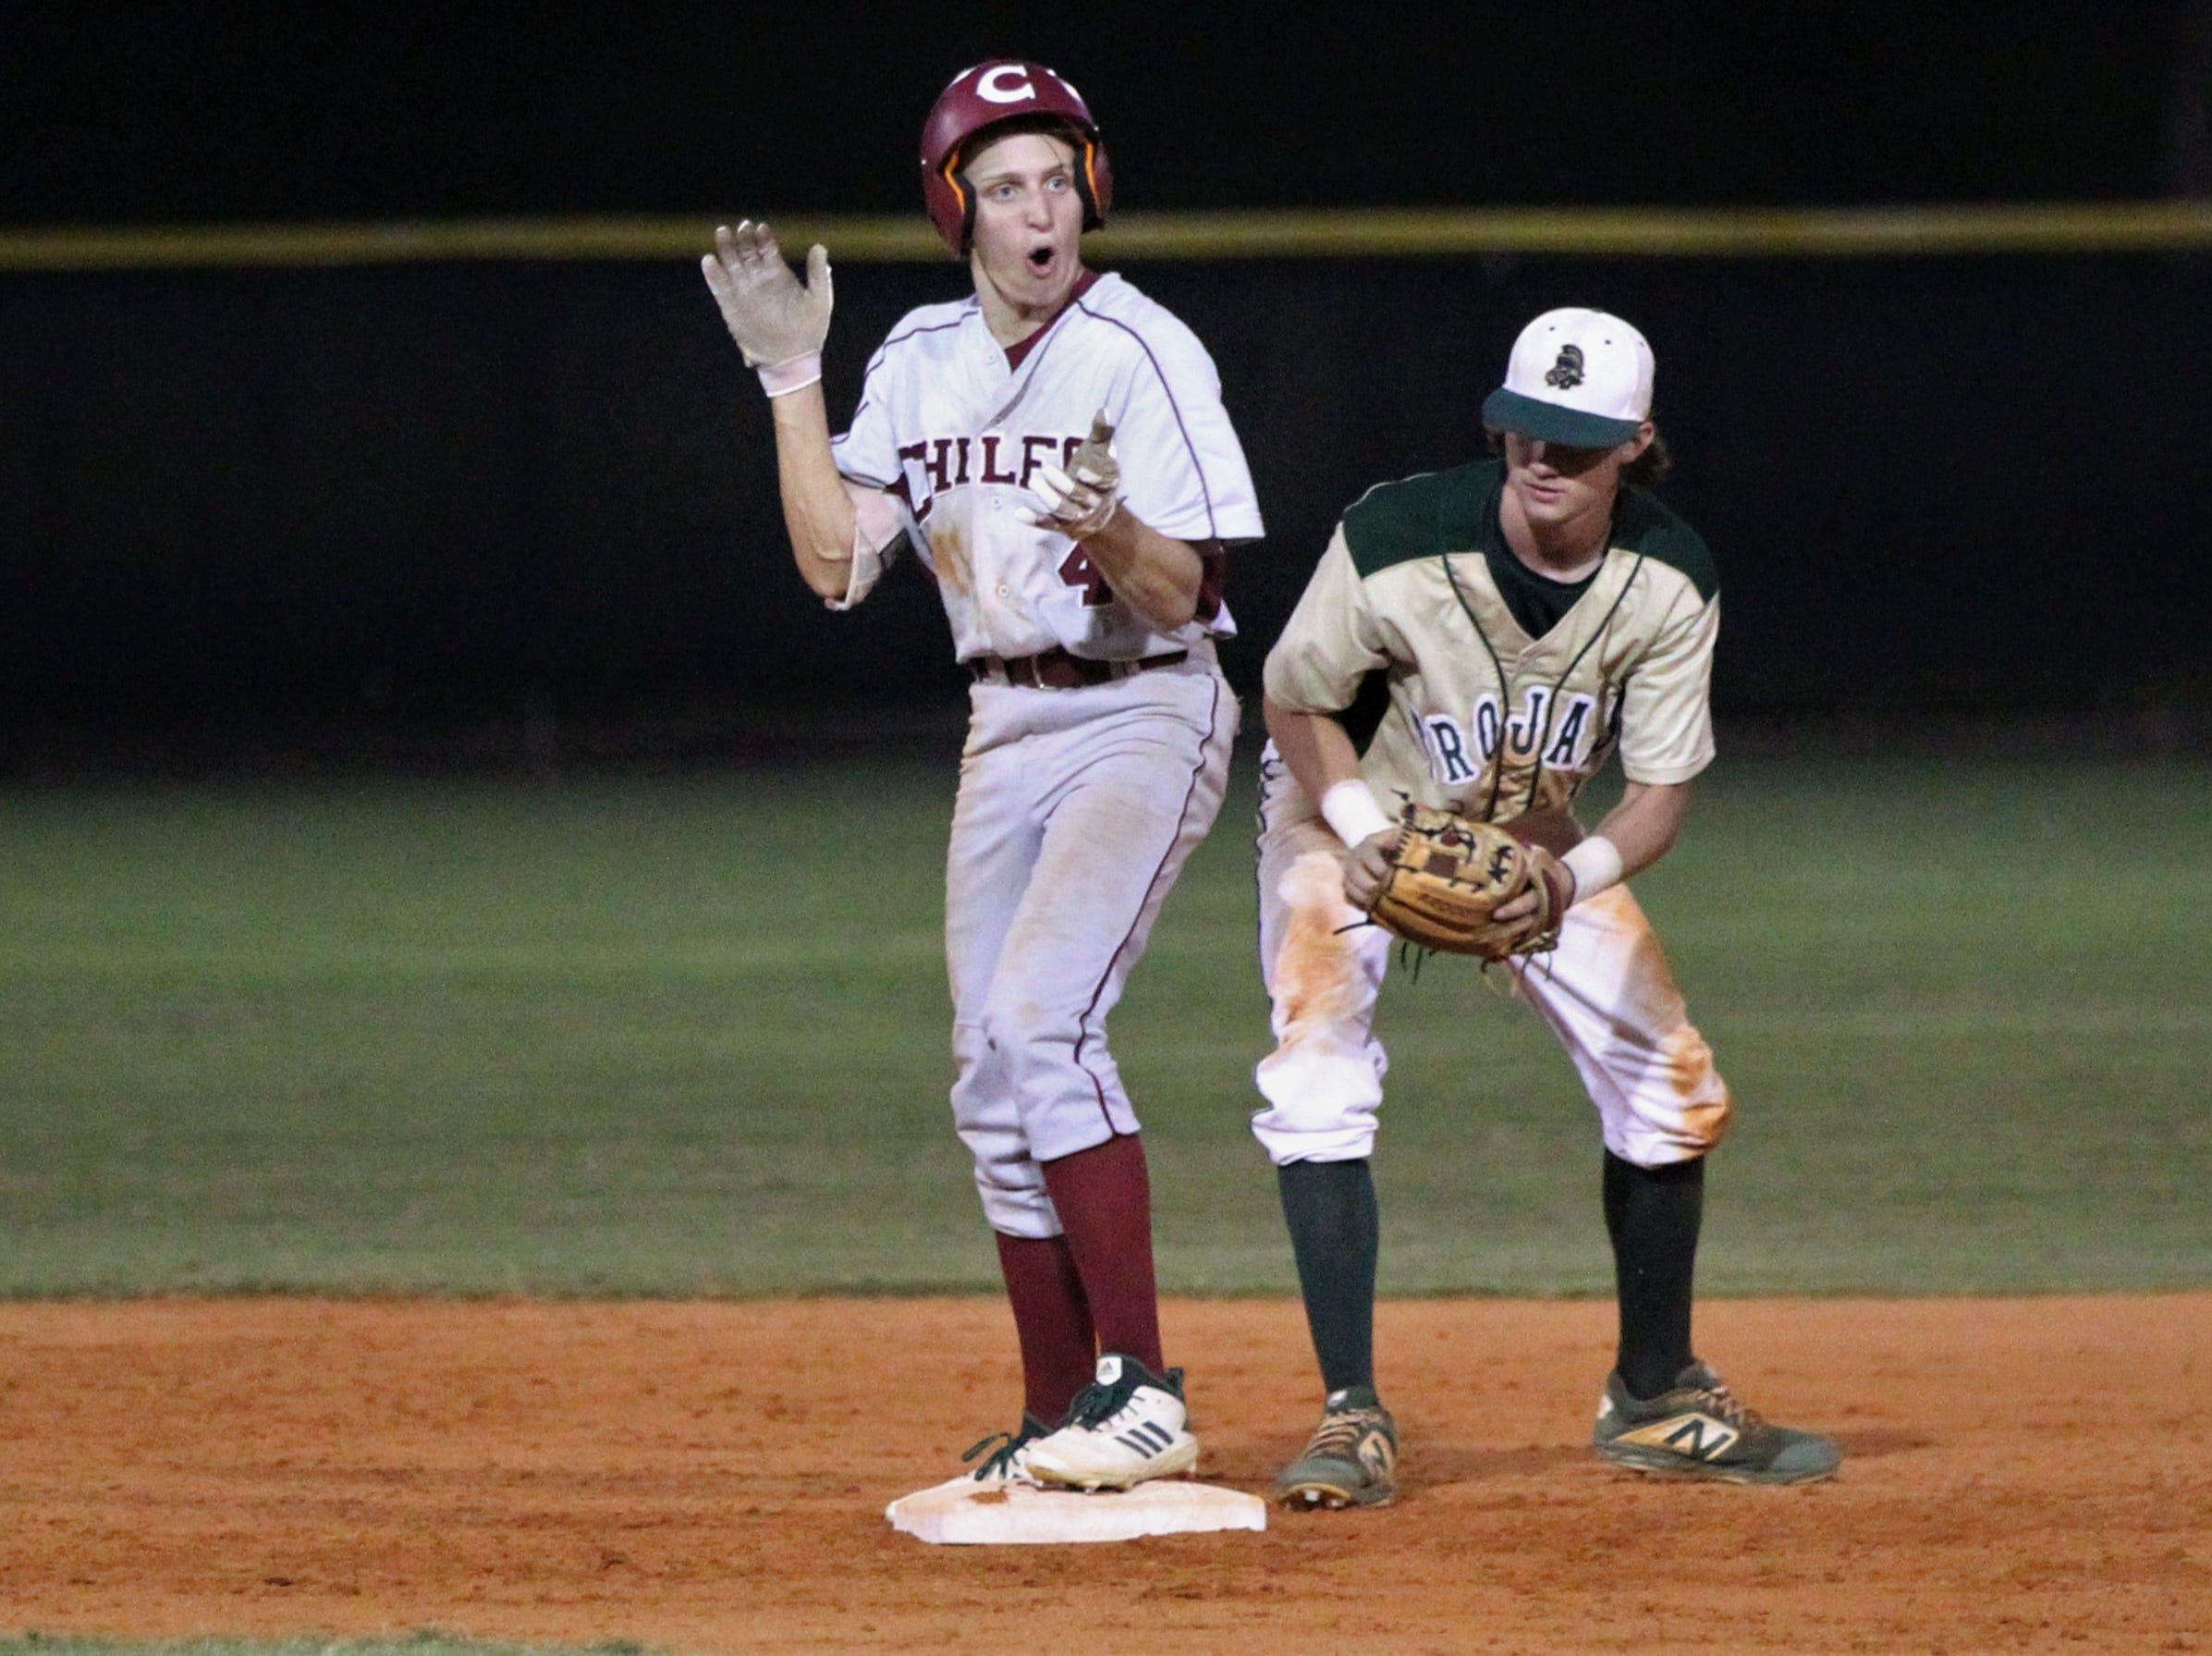 Chiles esnior Zach Holcomb reacts to hitting a double as Lincoln baseball beat Chiles 5-4  in 10 innings during a District 2-8A championship game on Thursday, May 9, 2019.